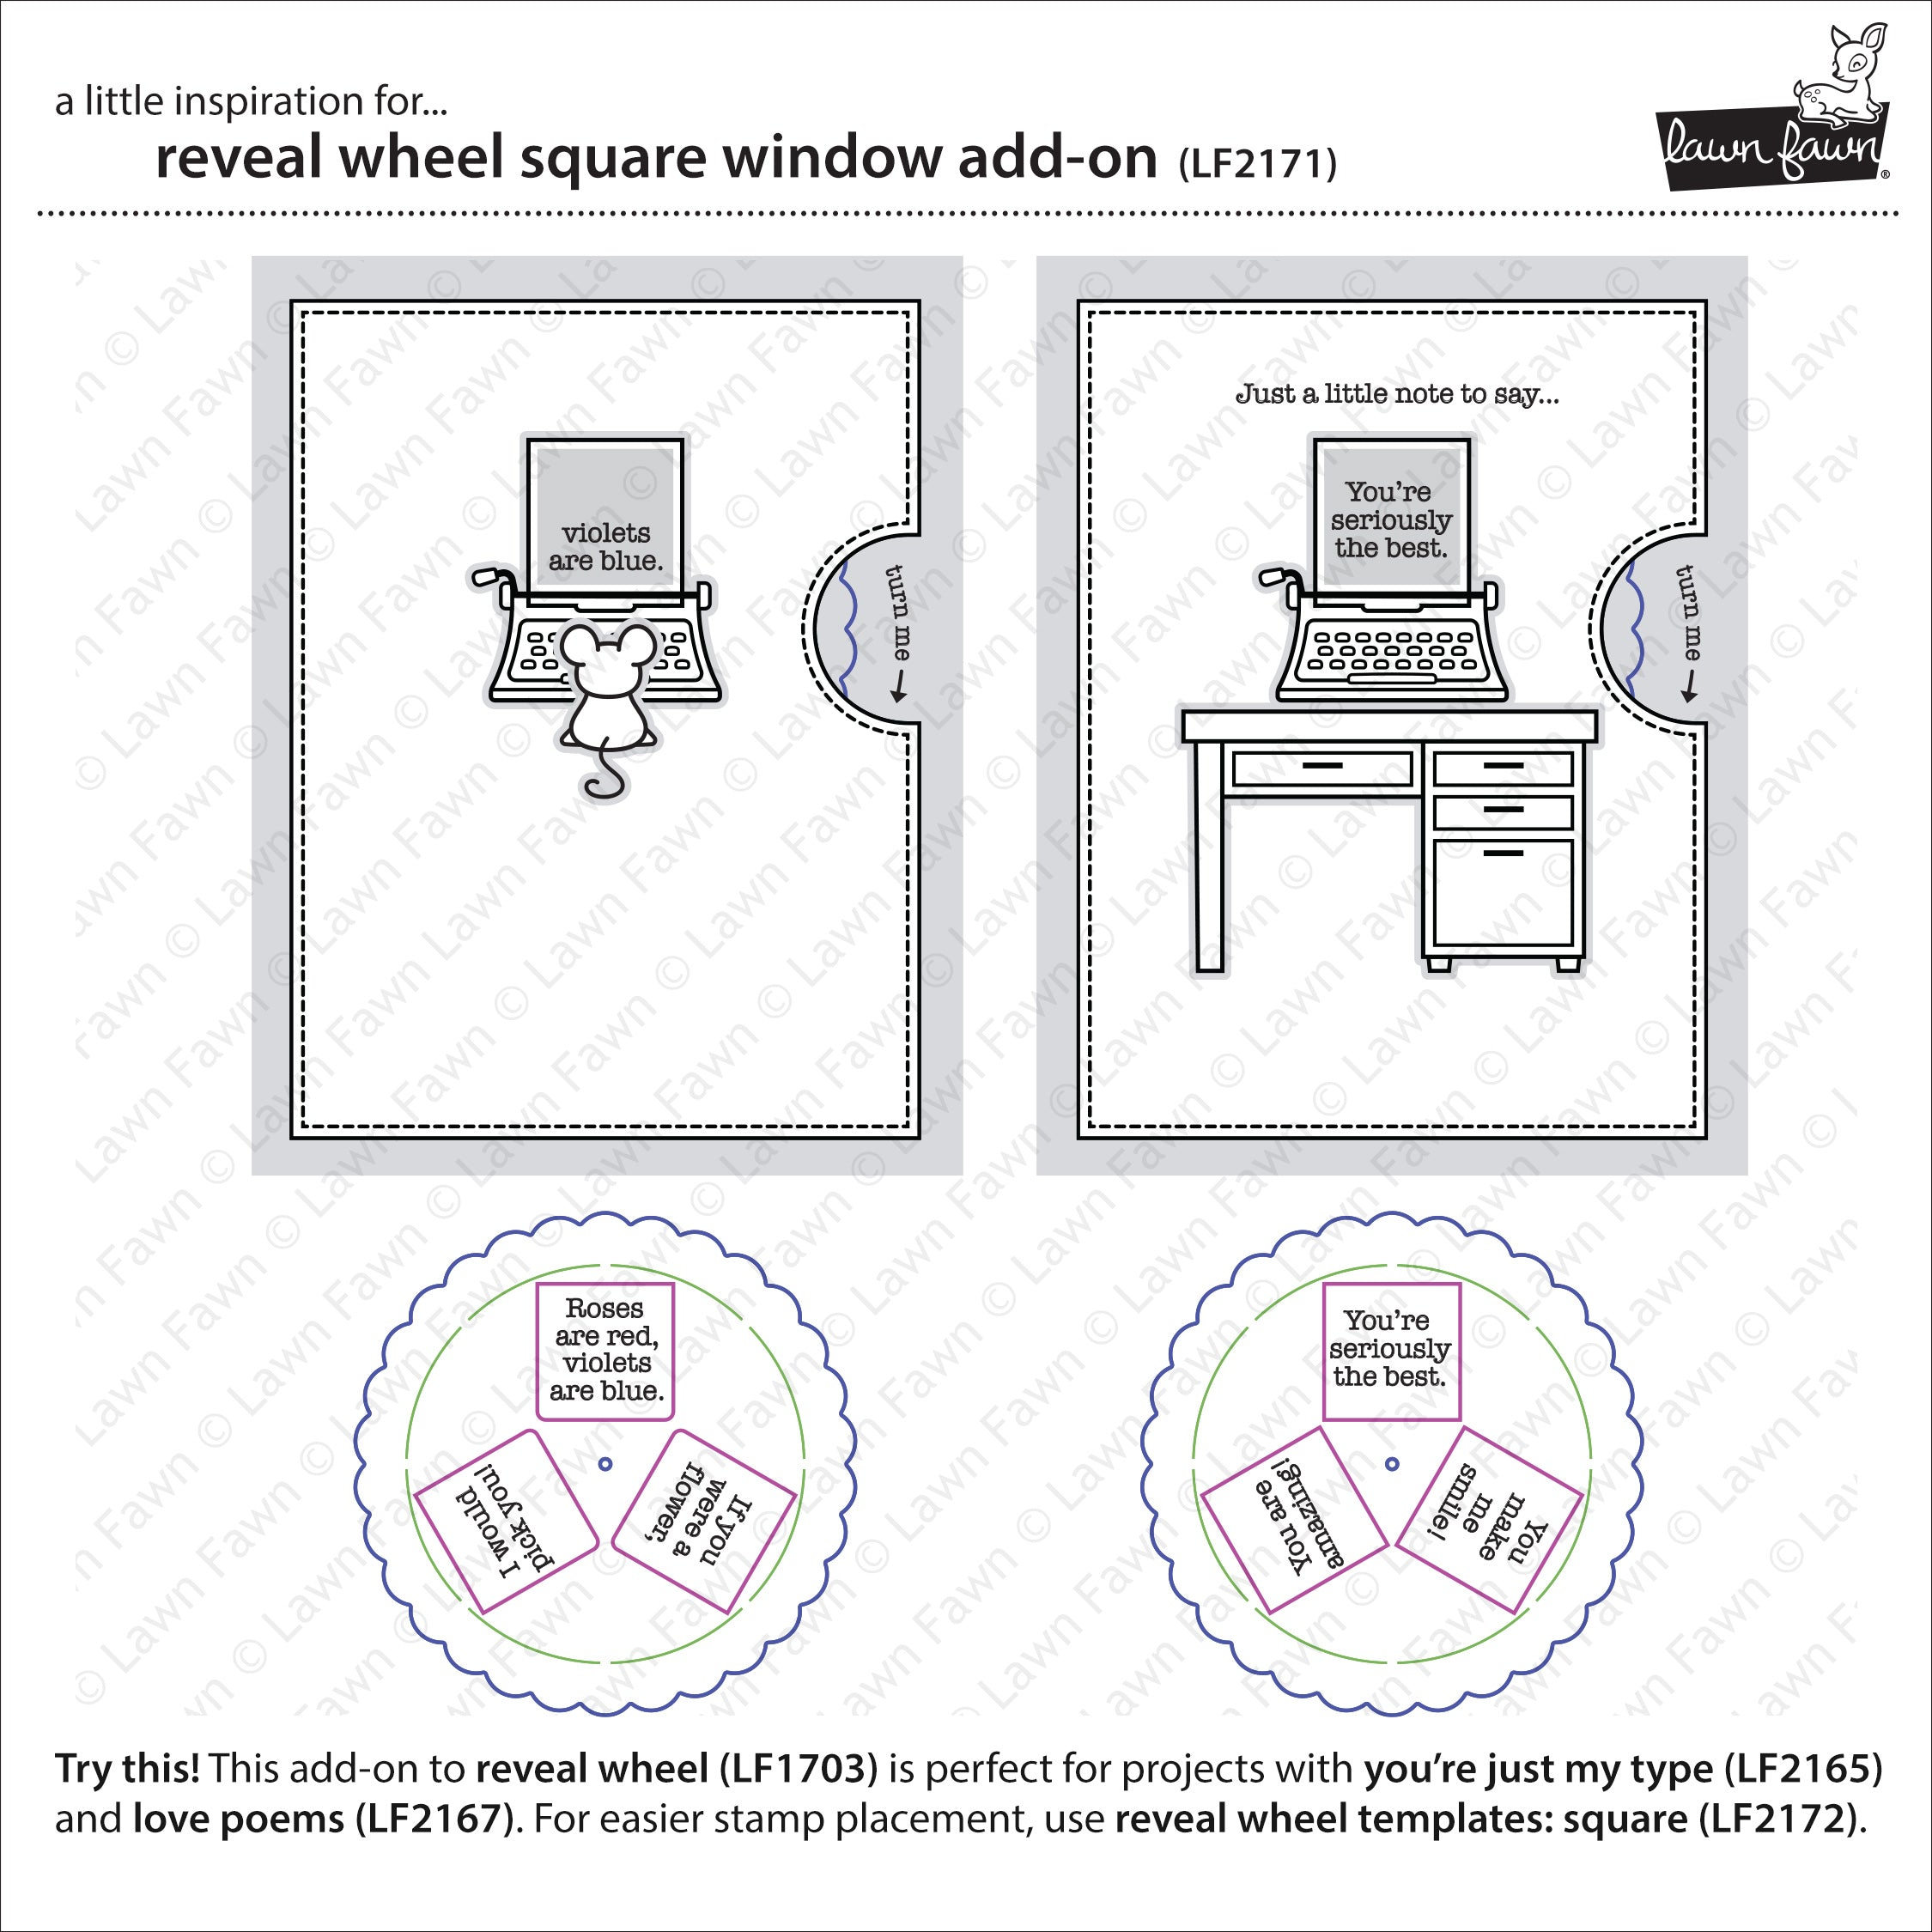 reveal wheel square window add-on